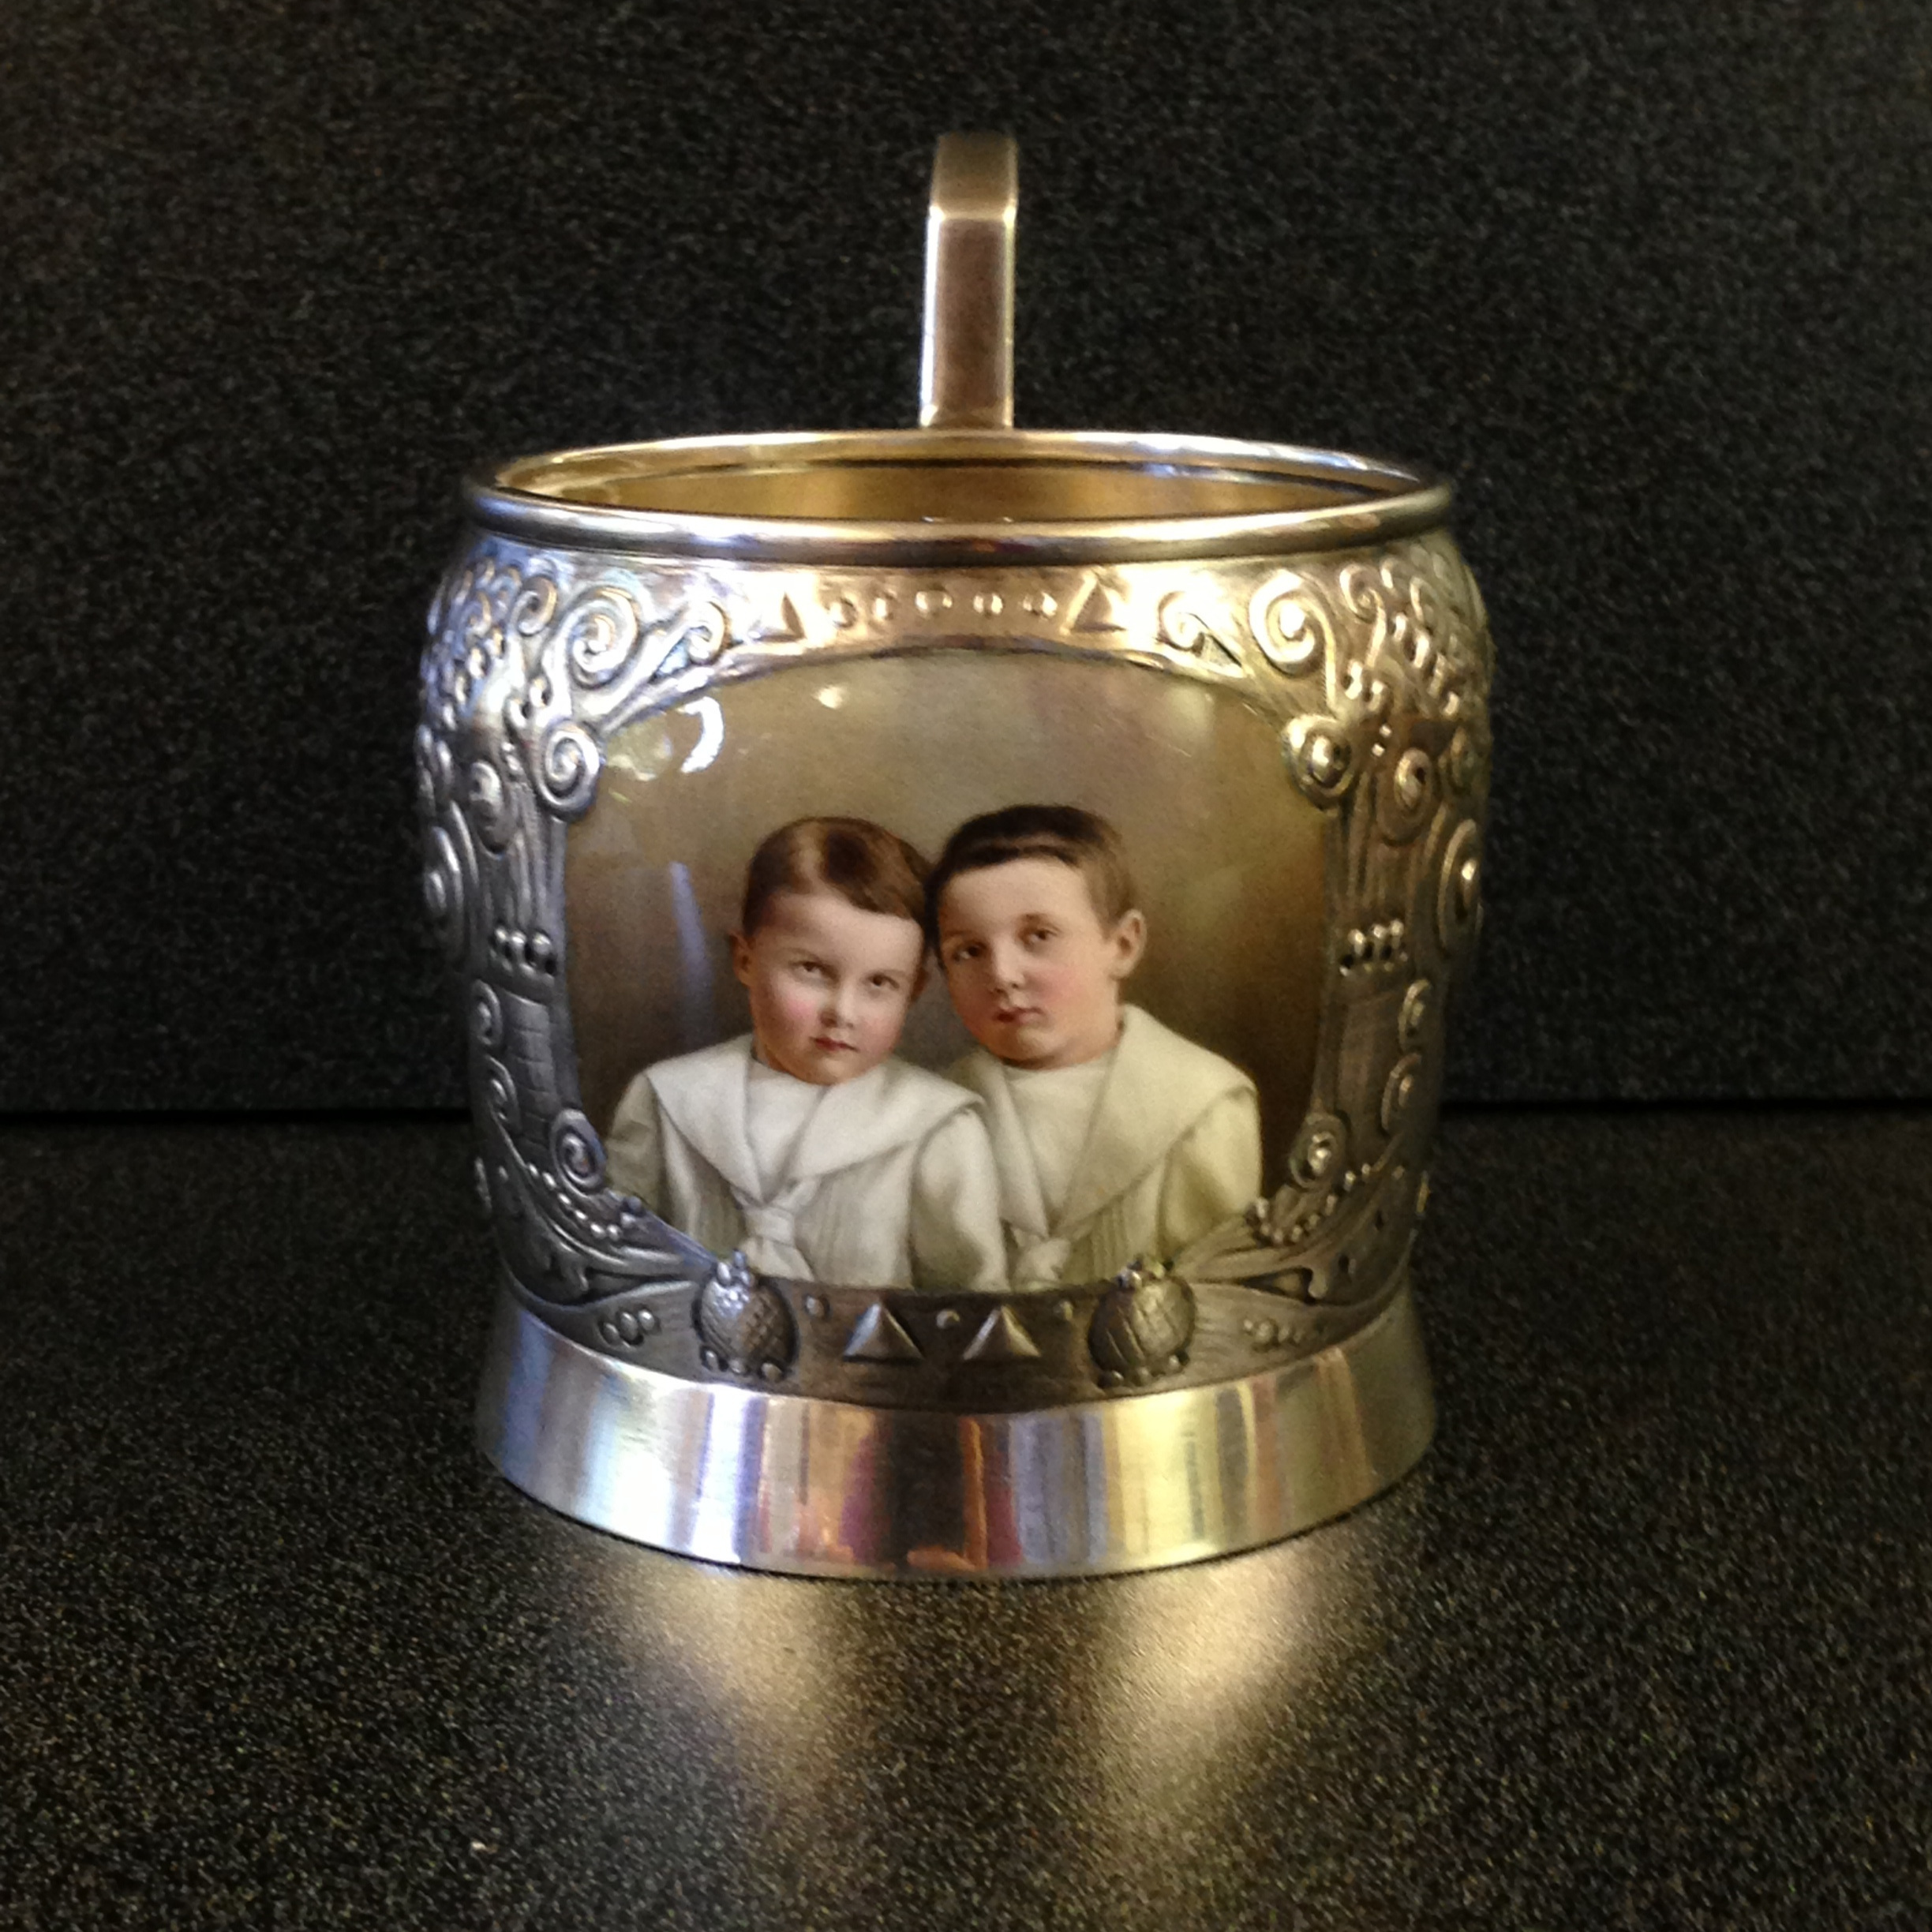 Silver  podstakannik  with enameled portrait of Yuri and Boris Goldovsky. Copyright restricted. All rights reserved.